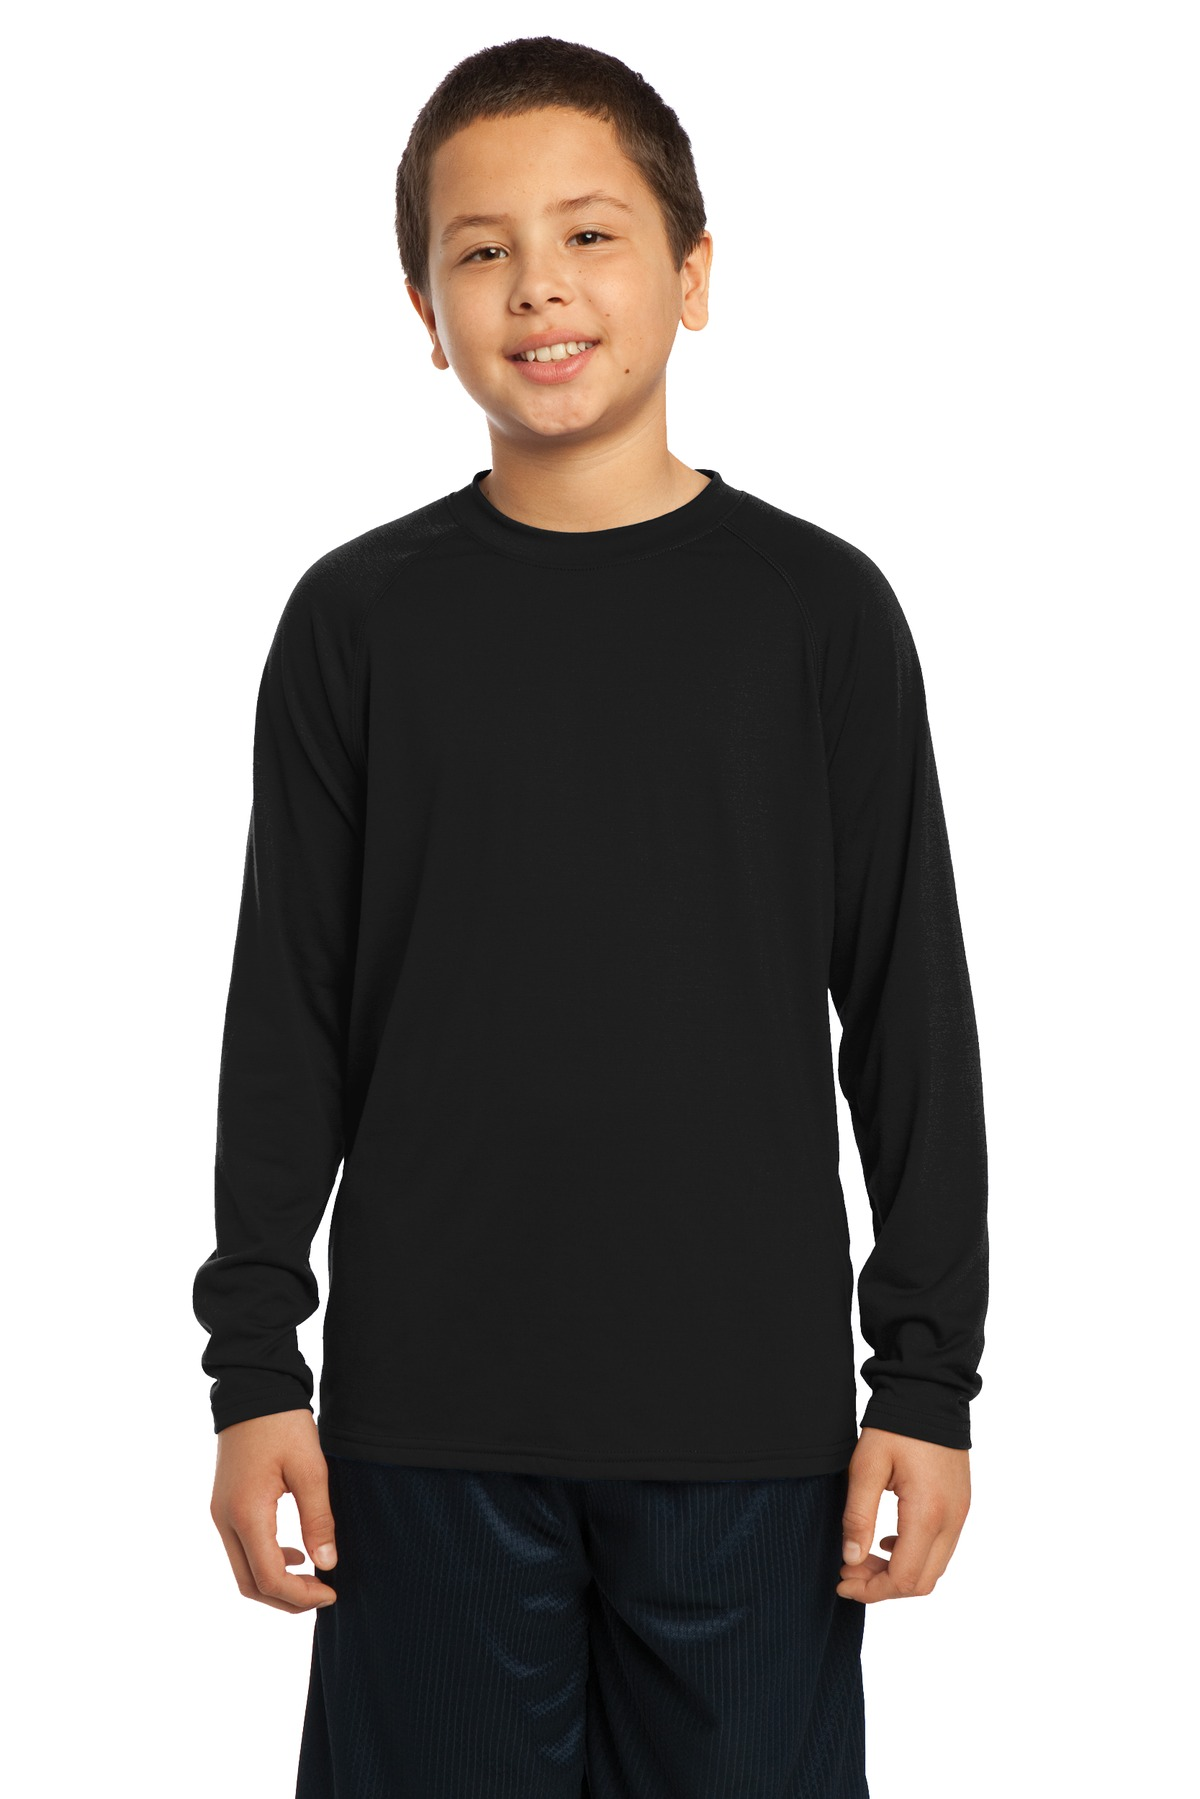 Sport-Tek Youth Long Sleeve Ultimate Performance Crew. YST700LS